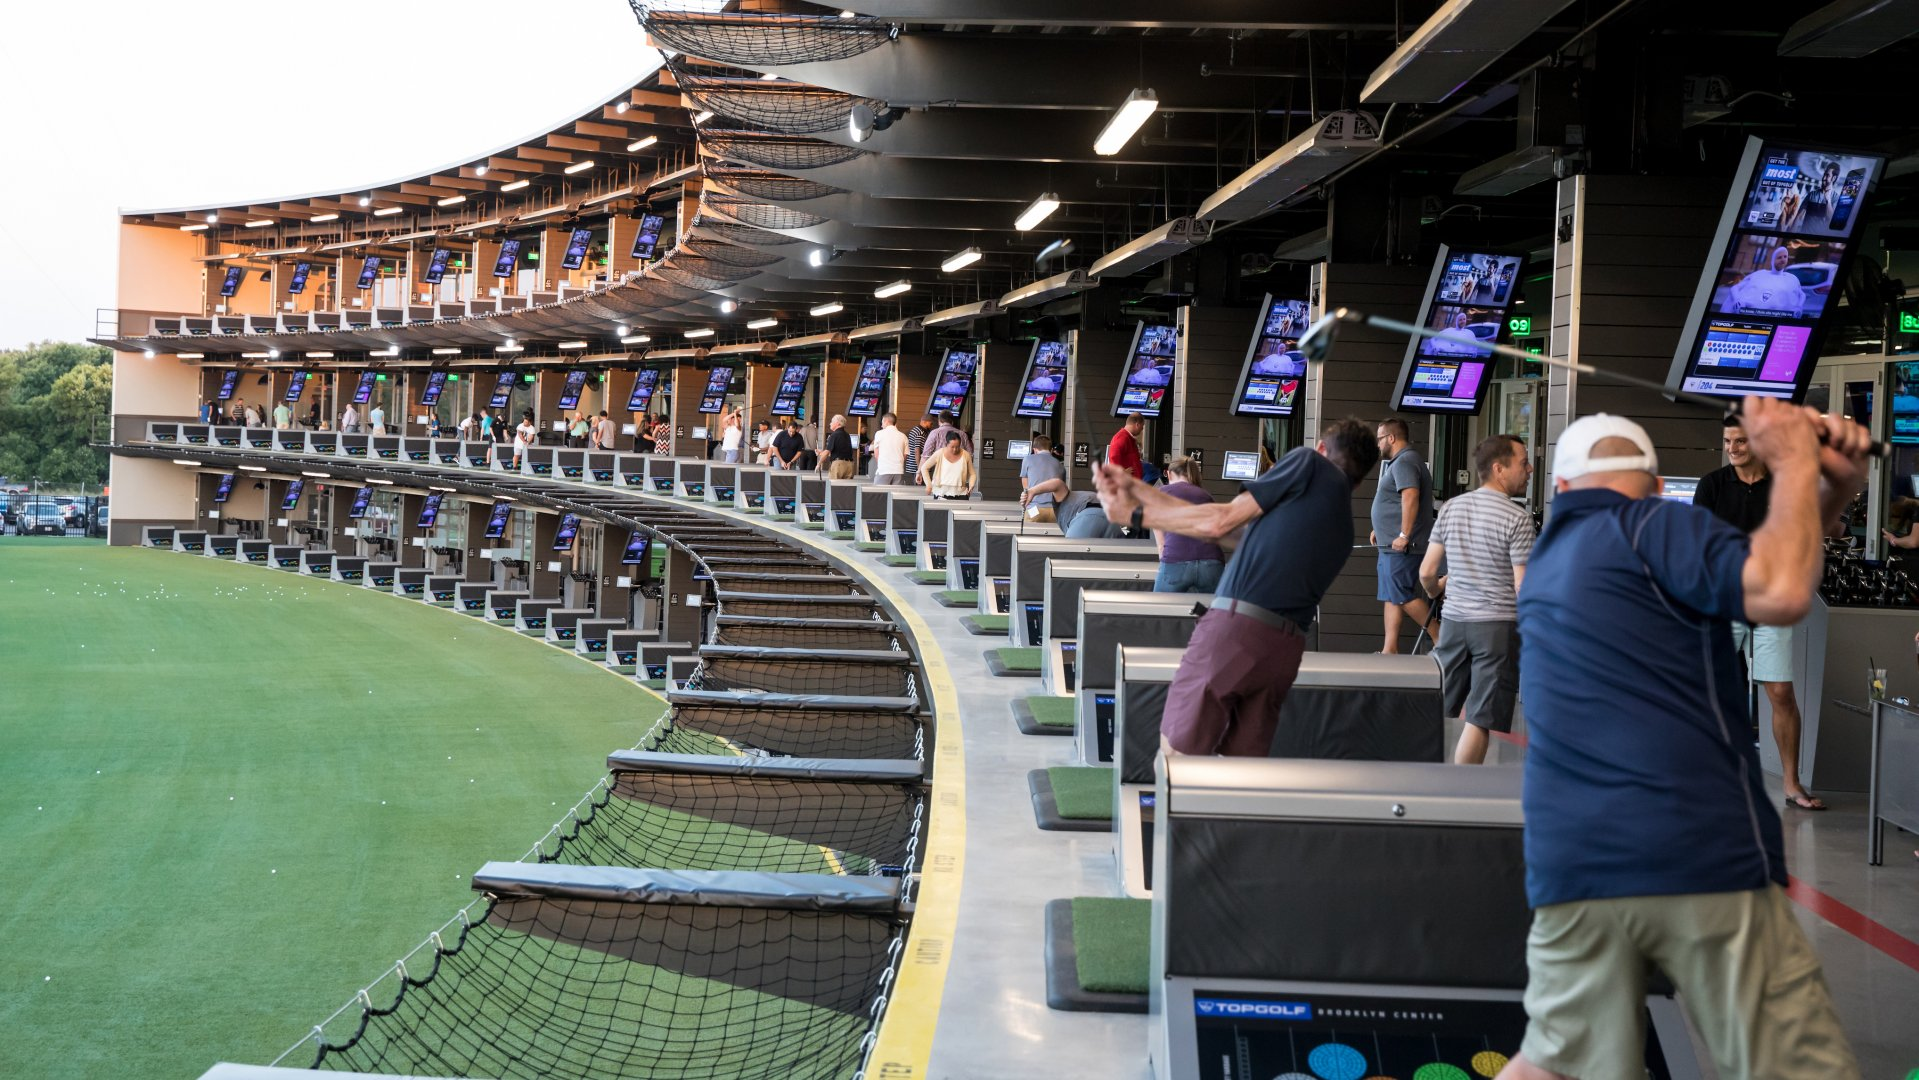 THIS NEW ENTERTAINMENT VENUE IN BROOKLYN CENTER OFFERS YEAR-ROUND GOLFING, WITH GREAT FOOD AND DRINKS.